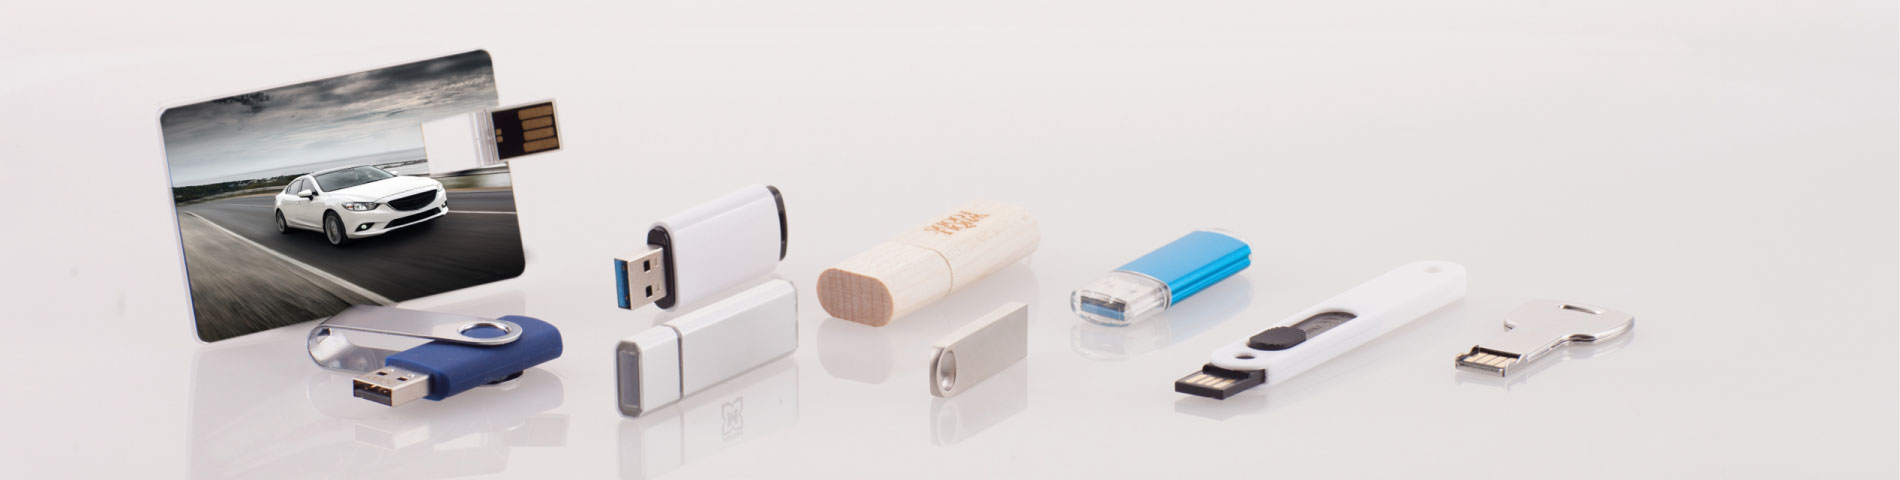 Werbemittel USB stick Filerex, innovativ, ideeen